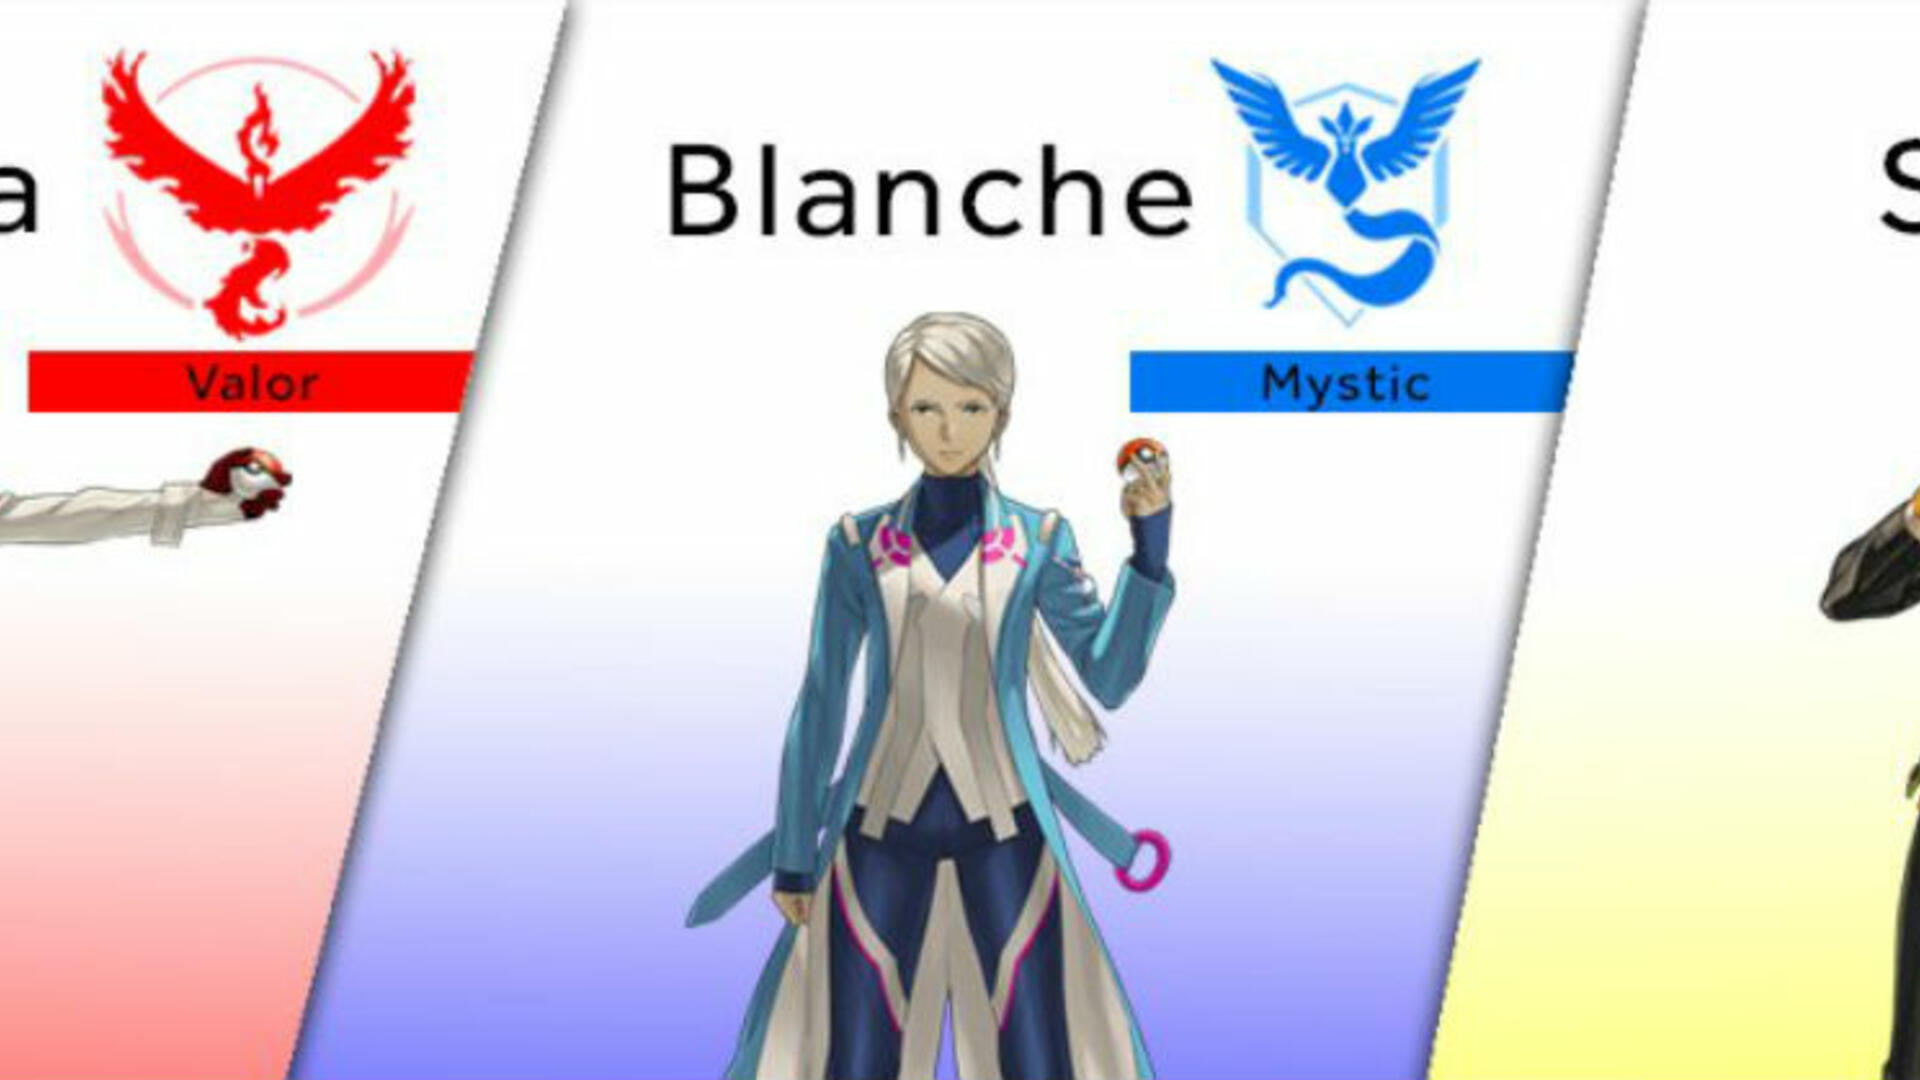 Niantic Reveals Team Leaders, Future Game Plans for Pokémon GO at Comic-Con